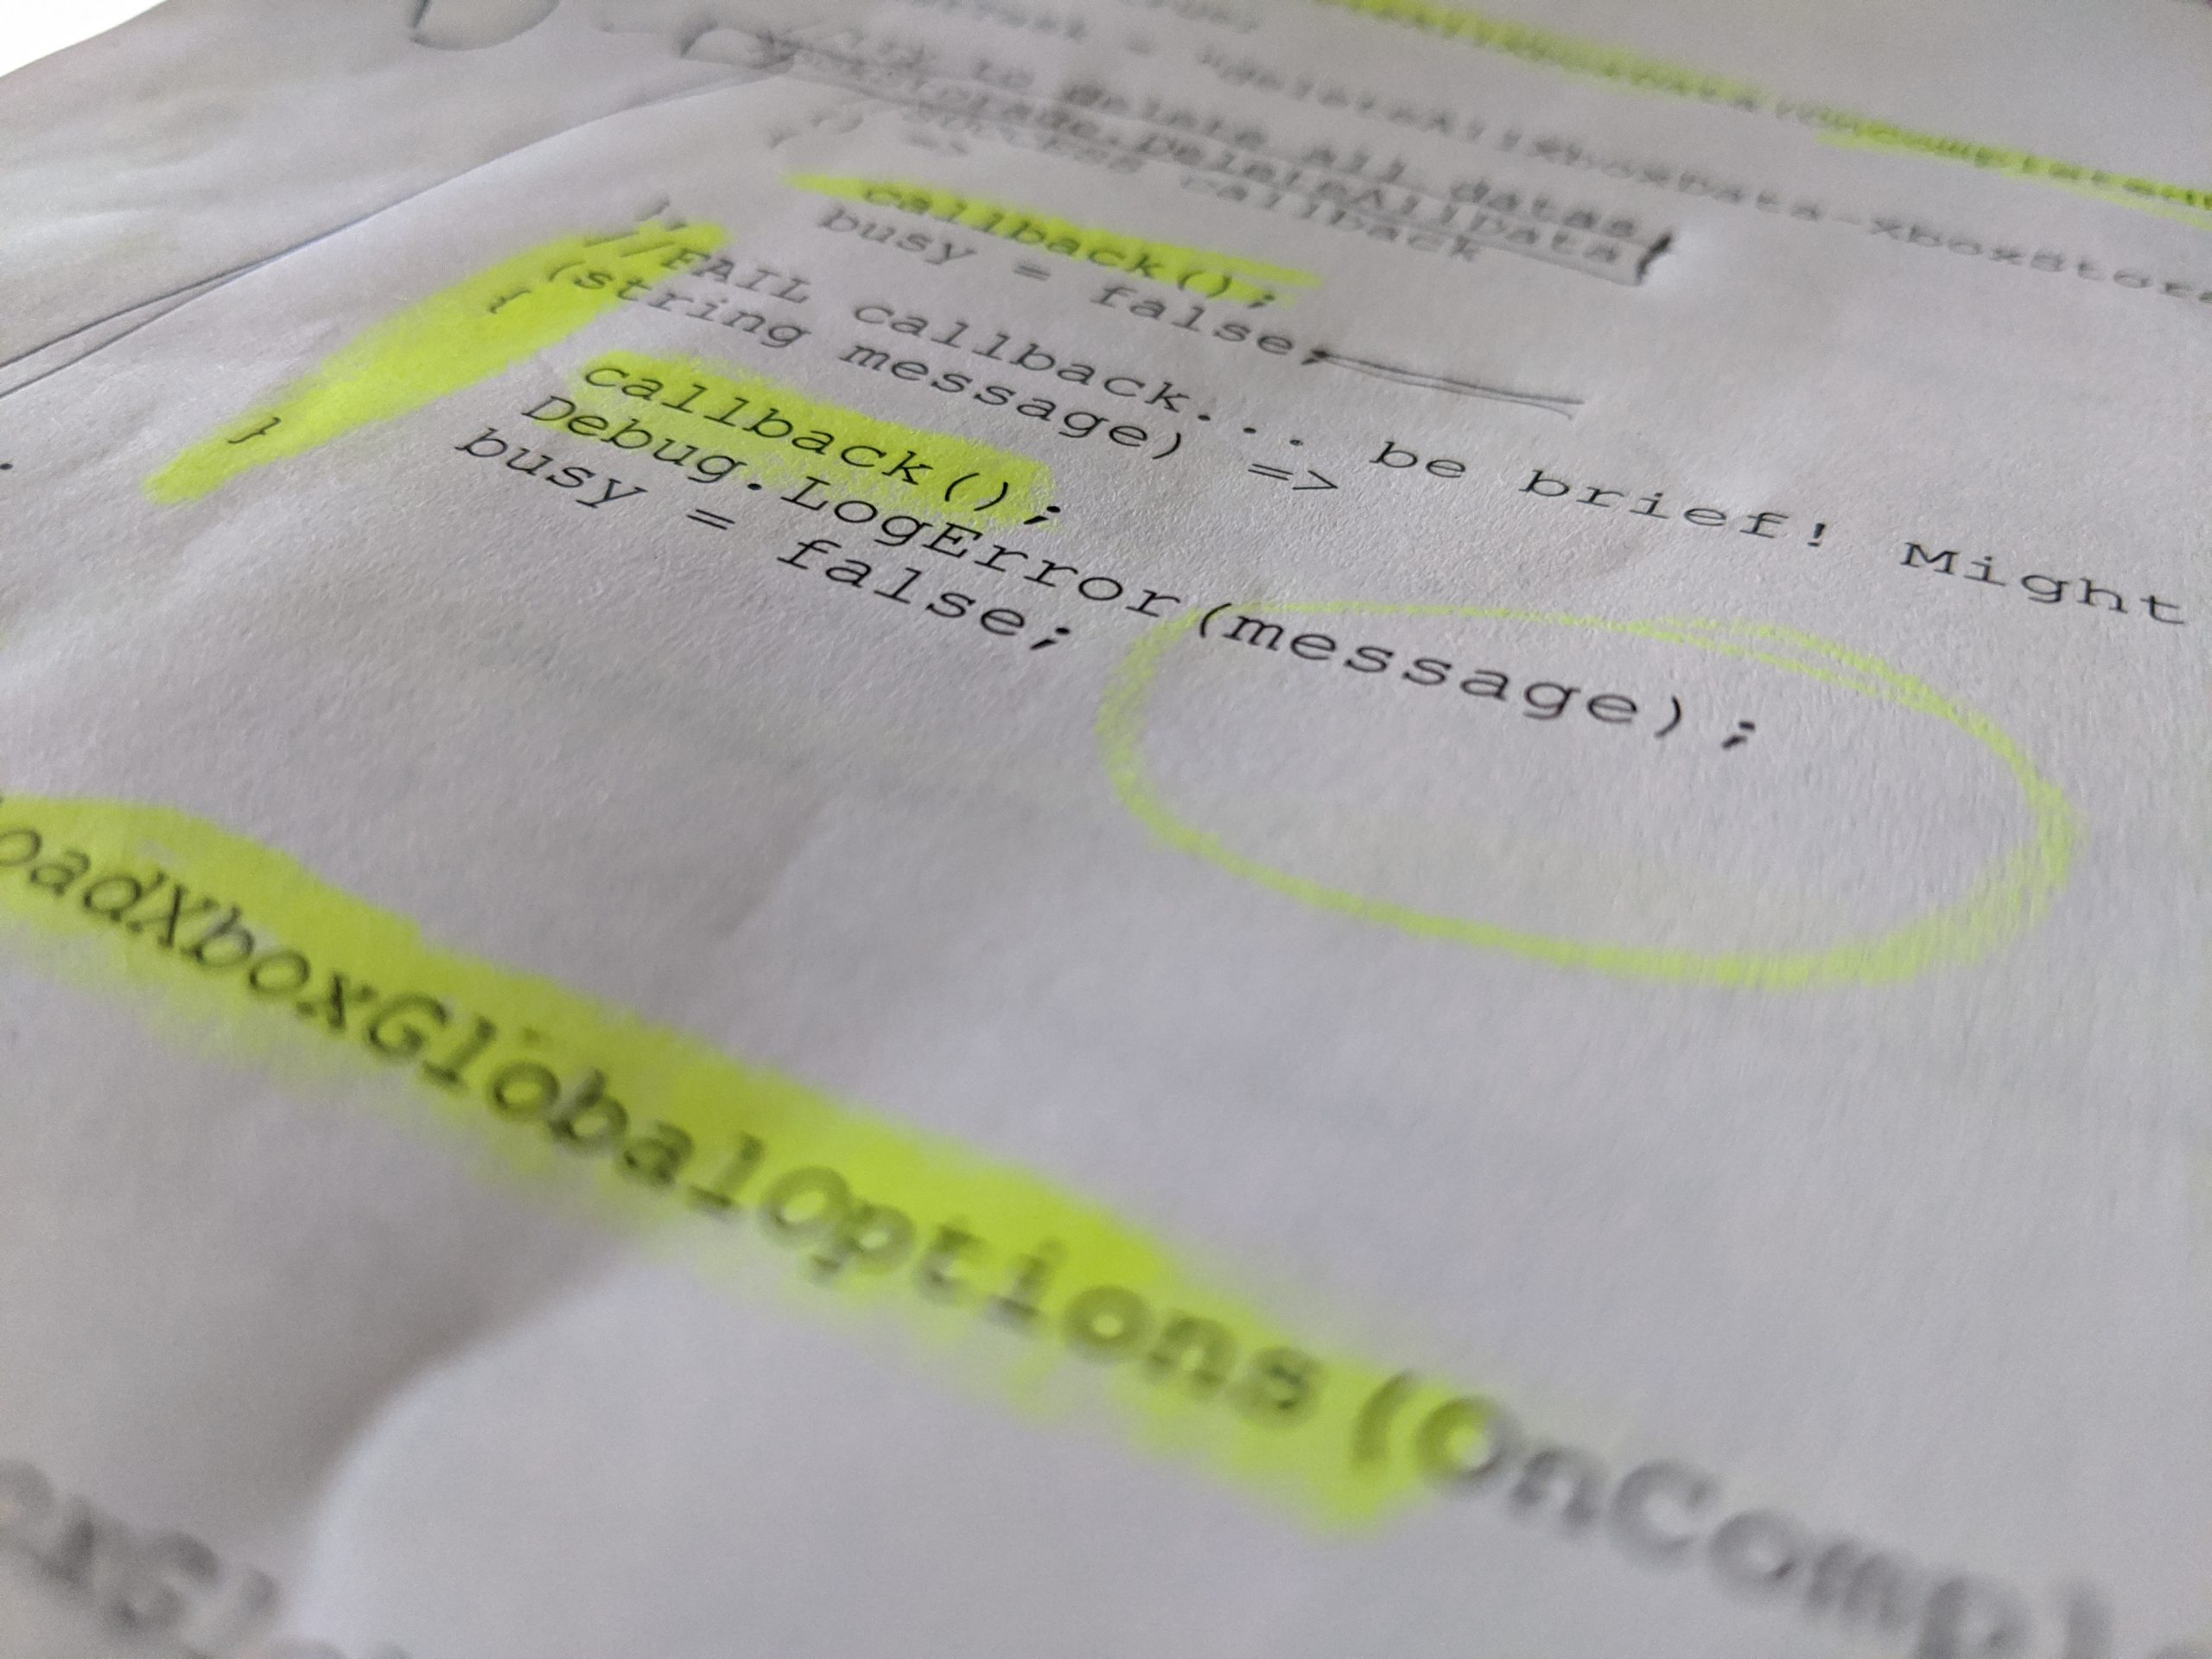 crappy old code printed on paper. you aren't missing much.